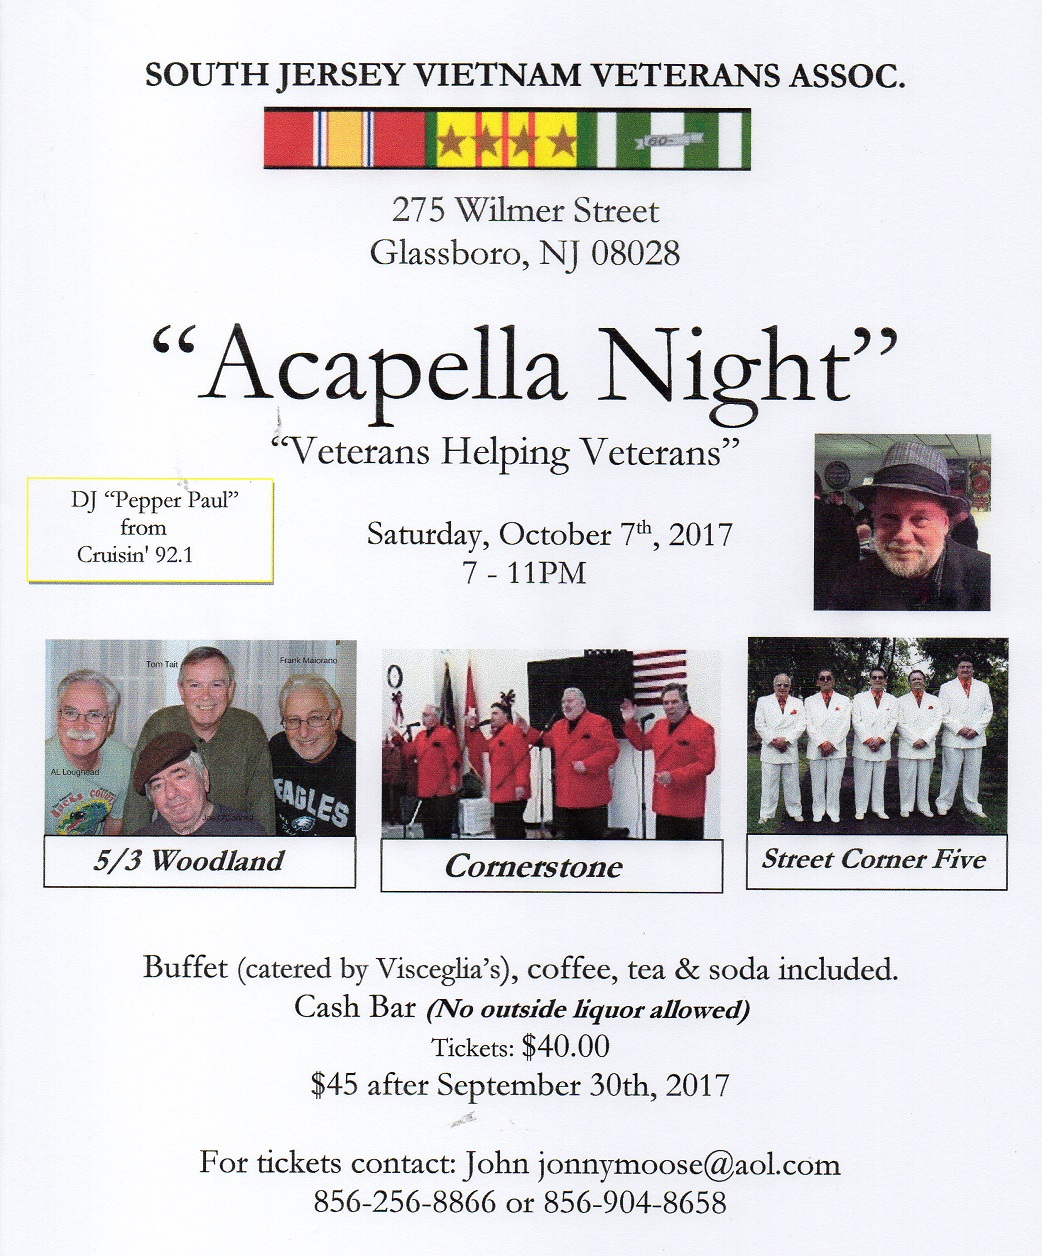 Acapella Night